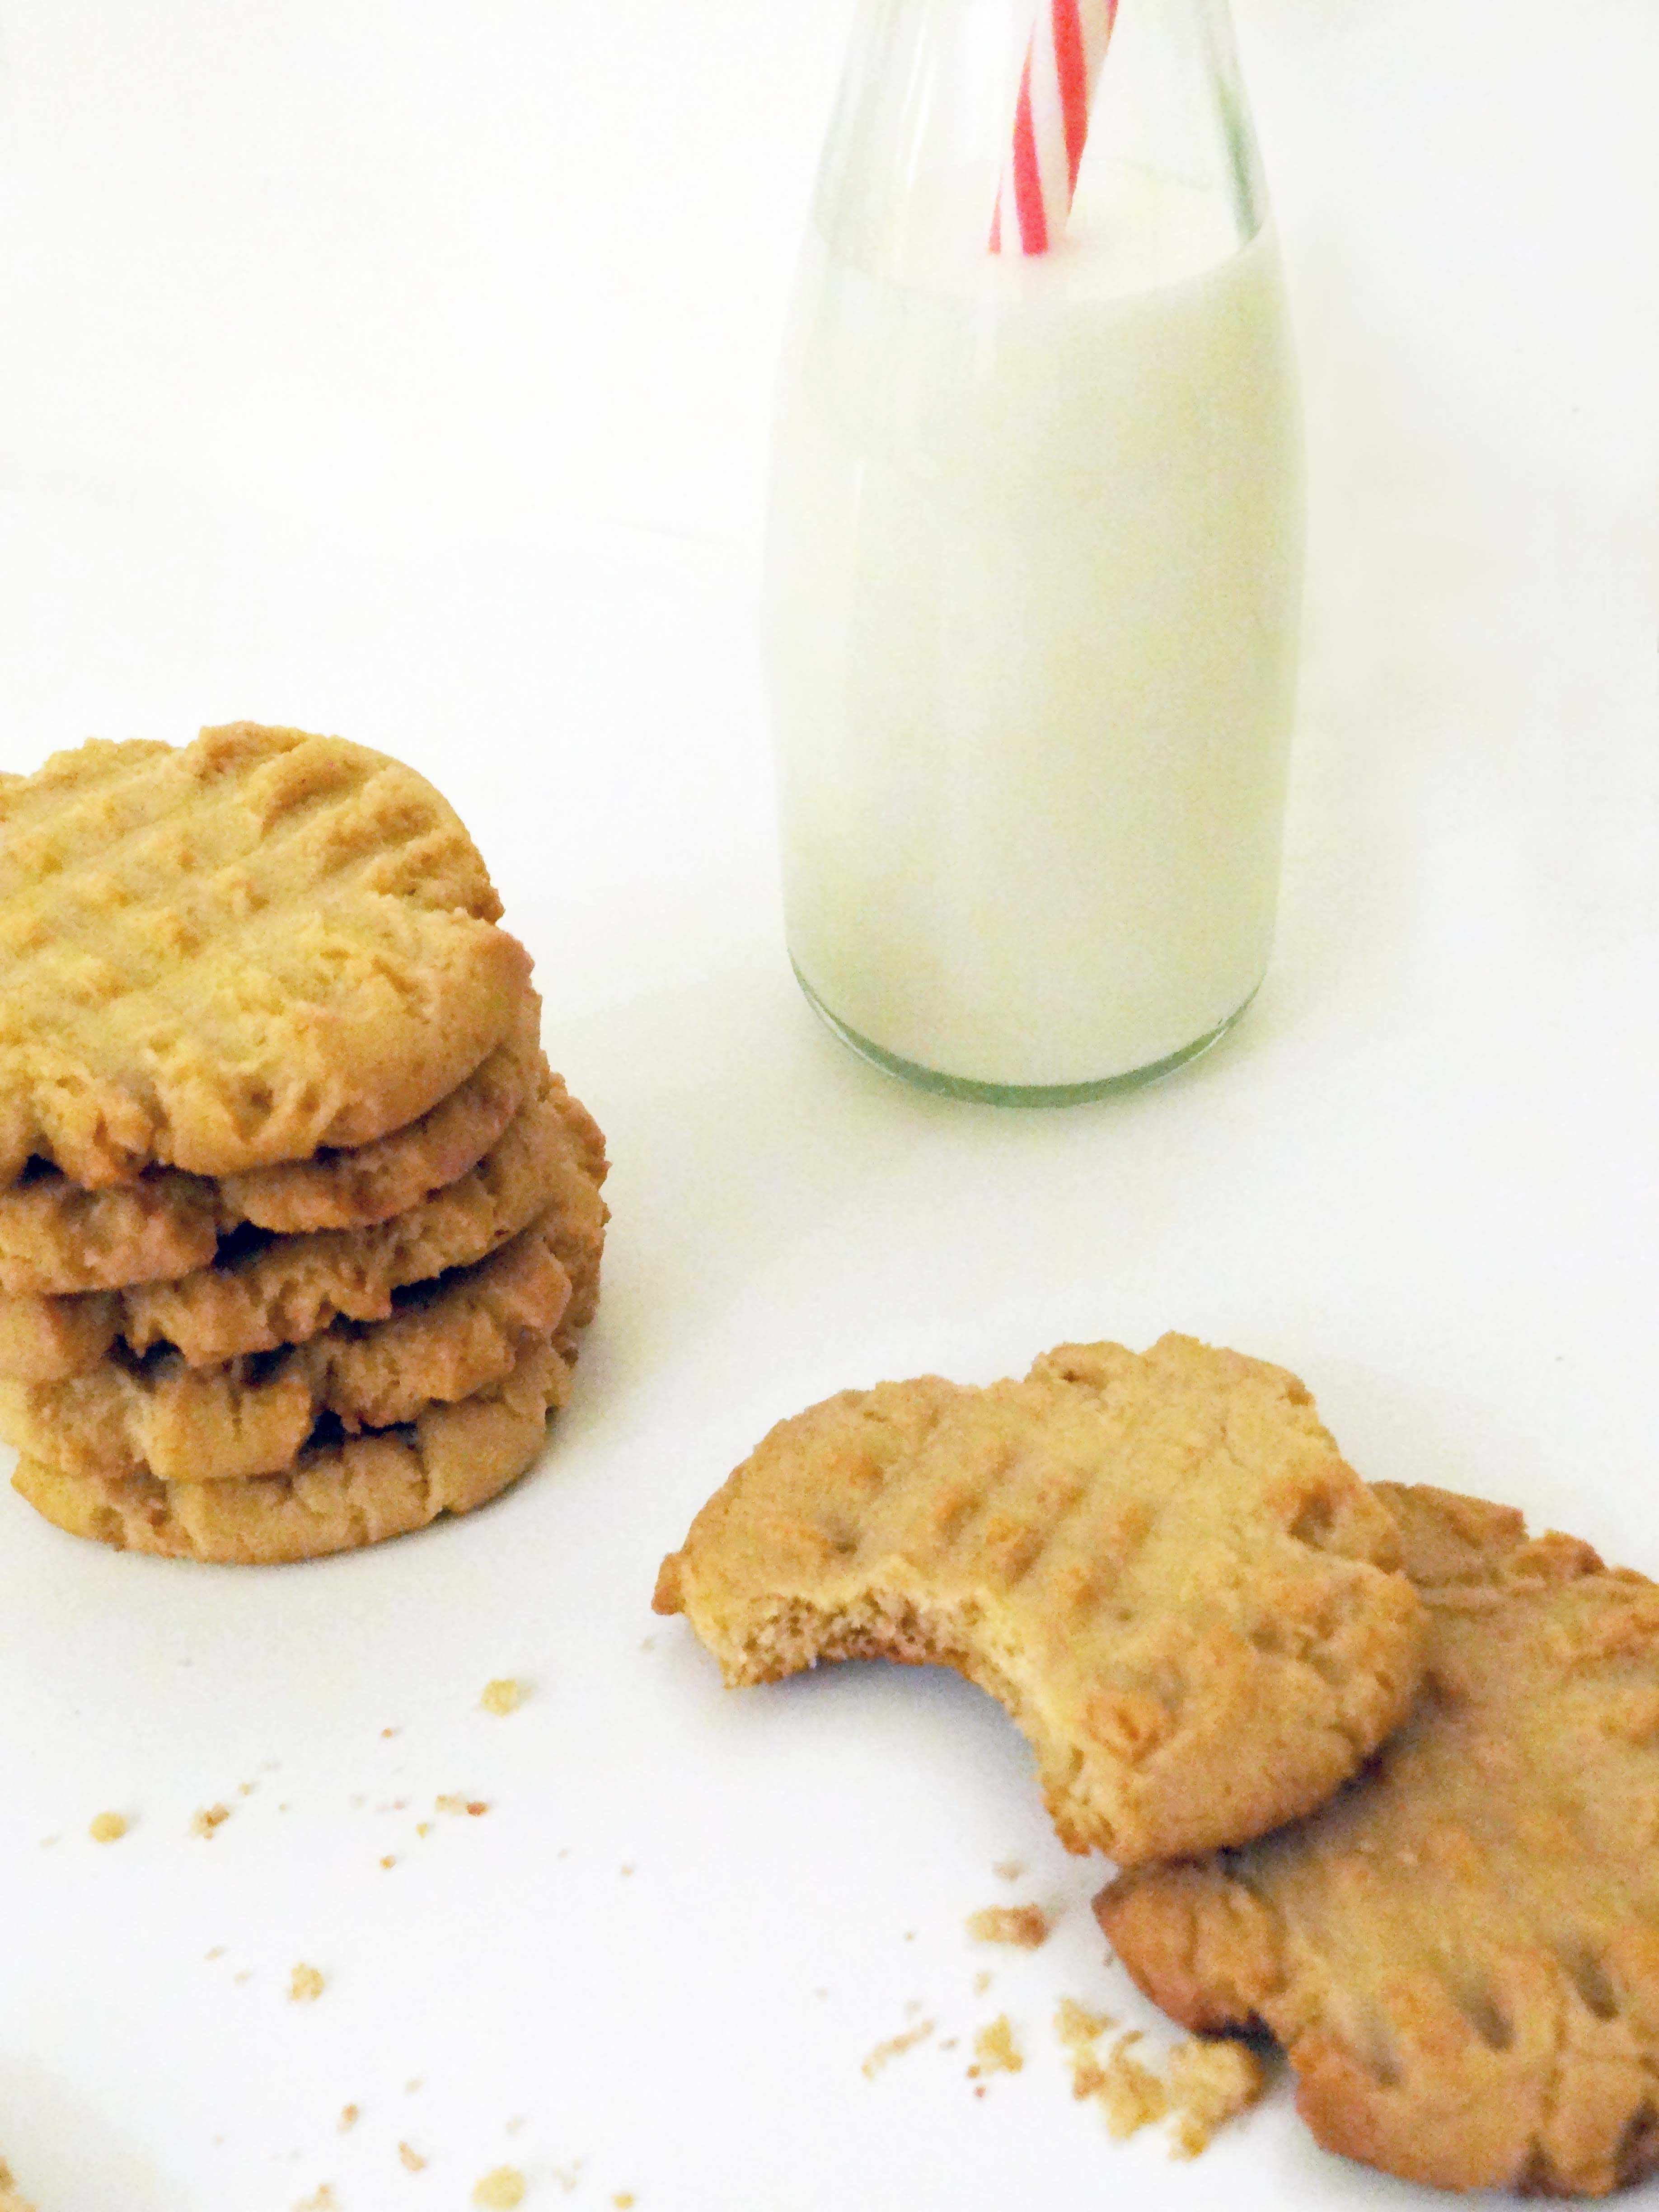 Peanut Butter Cookies, Baking, Kitchen Aid Mixer, Cookies, Recipes, Dessert, Lifestyle Blogger, Toronto Lifestyle Blogs, Milk and Cookies